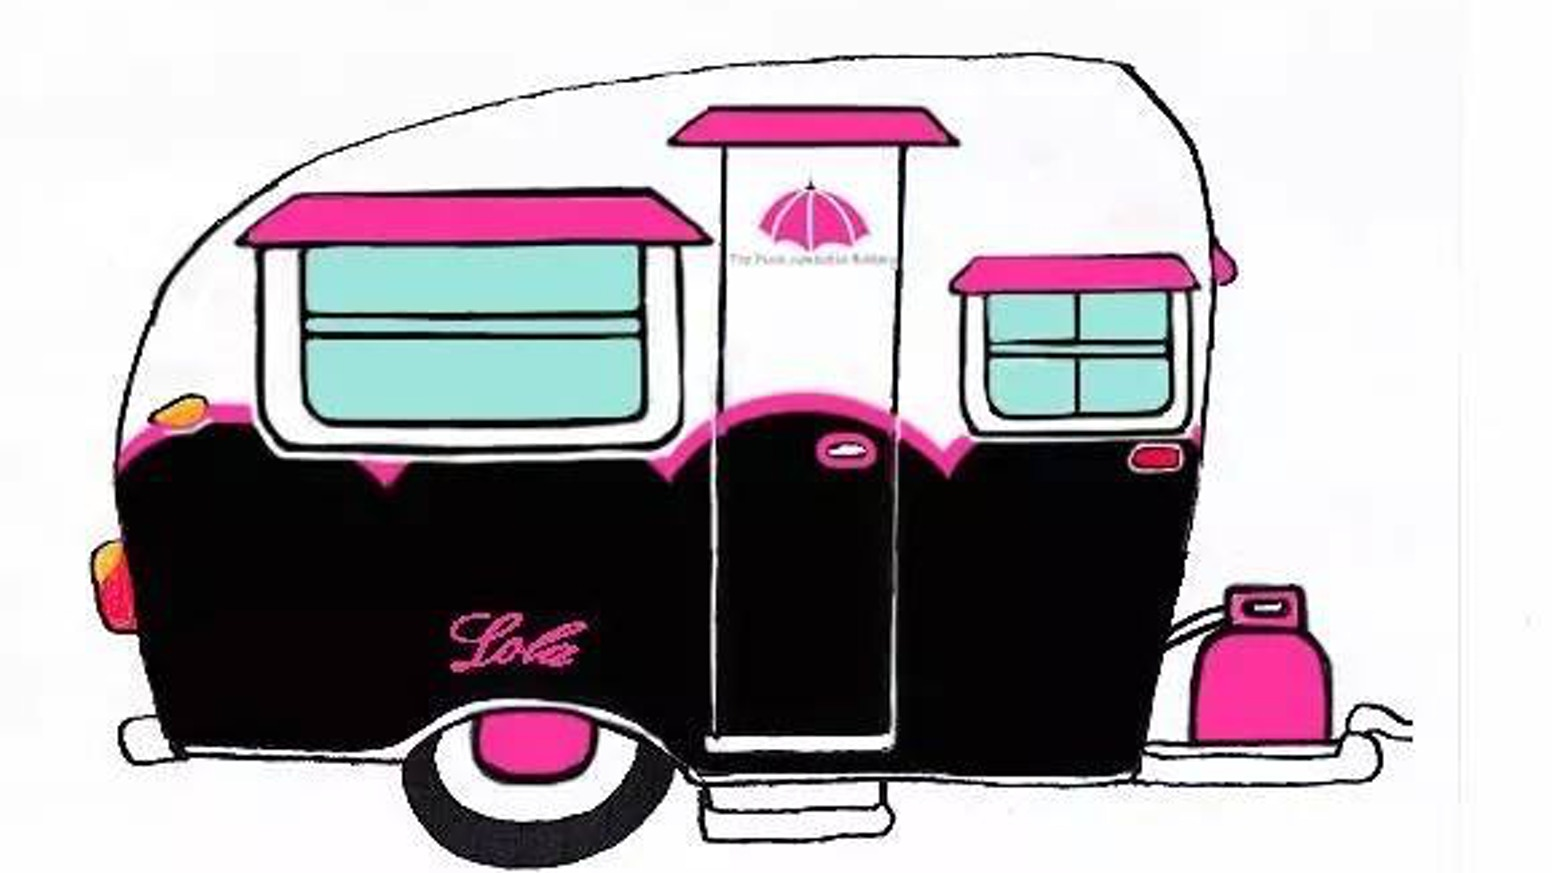 Iowa City's first mobile bakery. Serving treats like grandma used to make from a vintage camper named Lola, after her, of course.